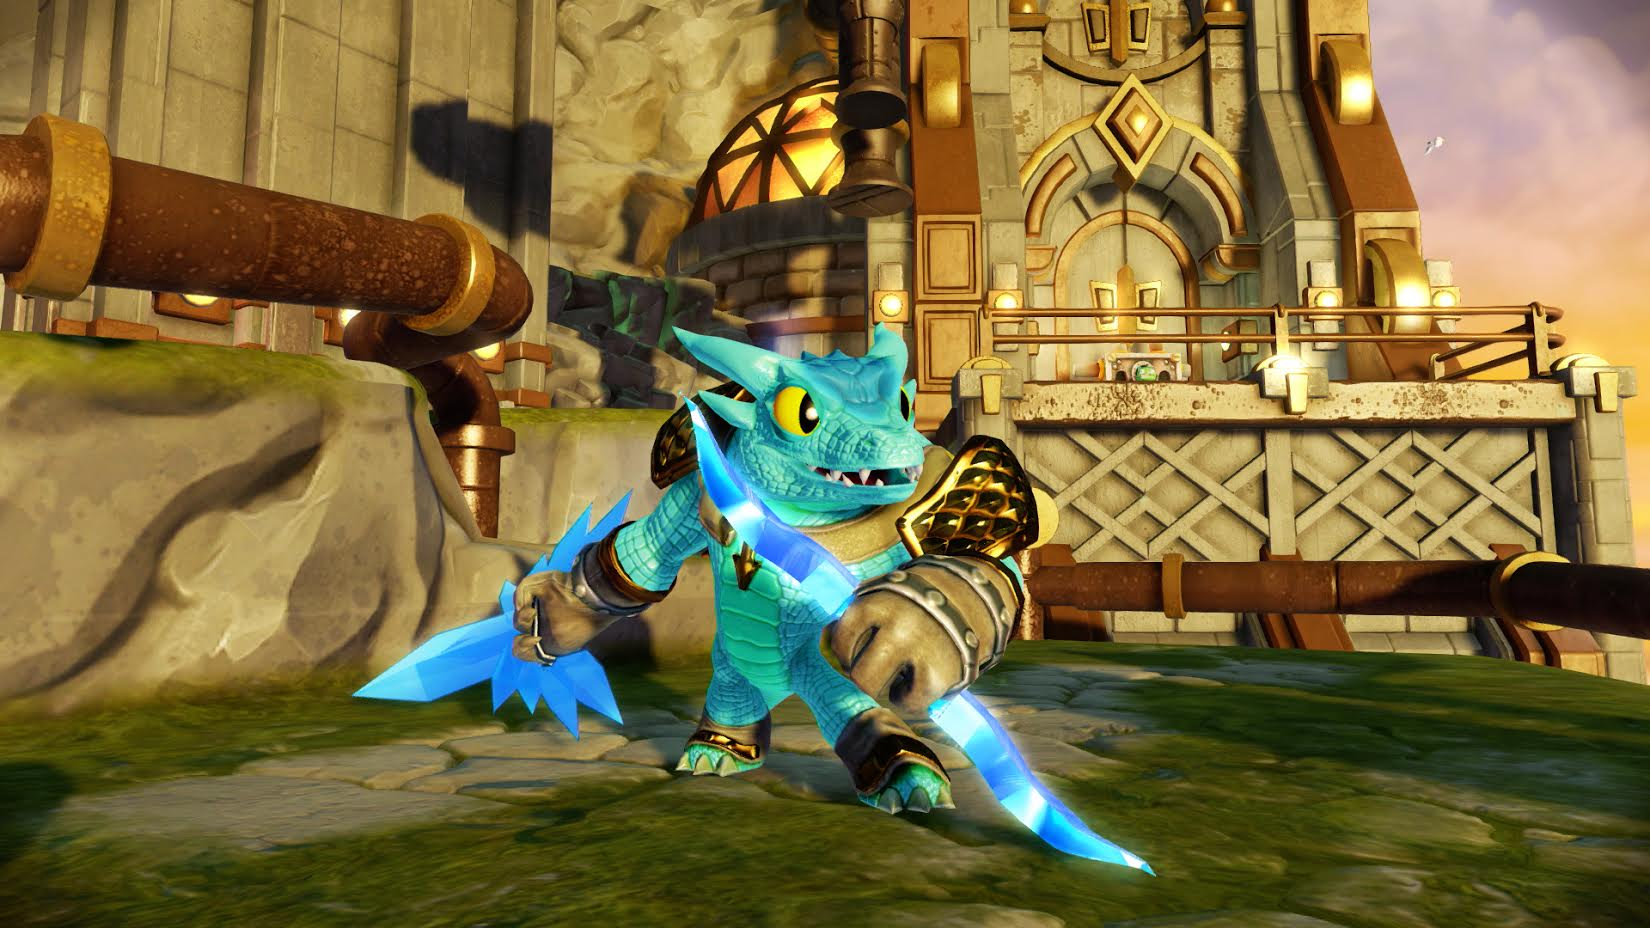 Skylanders Trap Team is real, check it out here